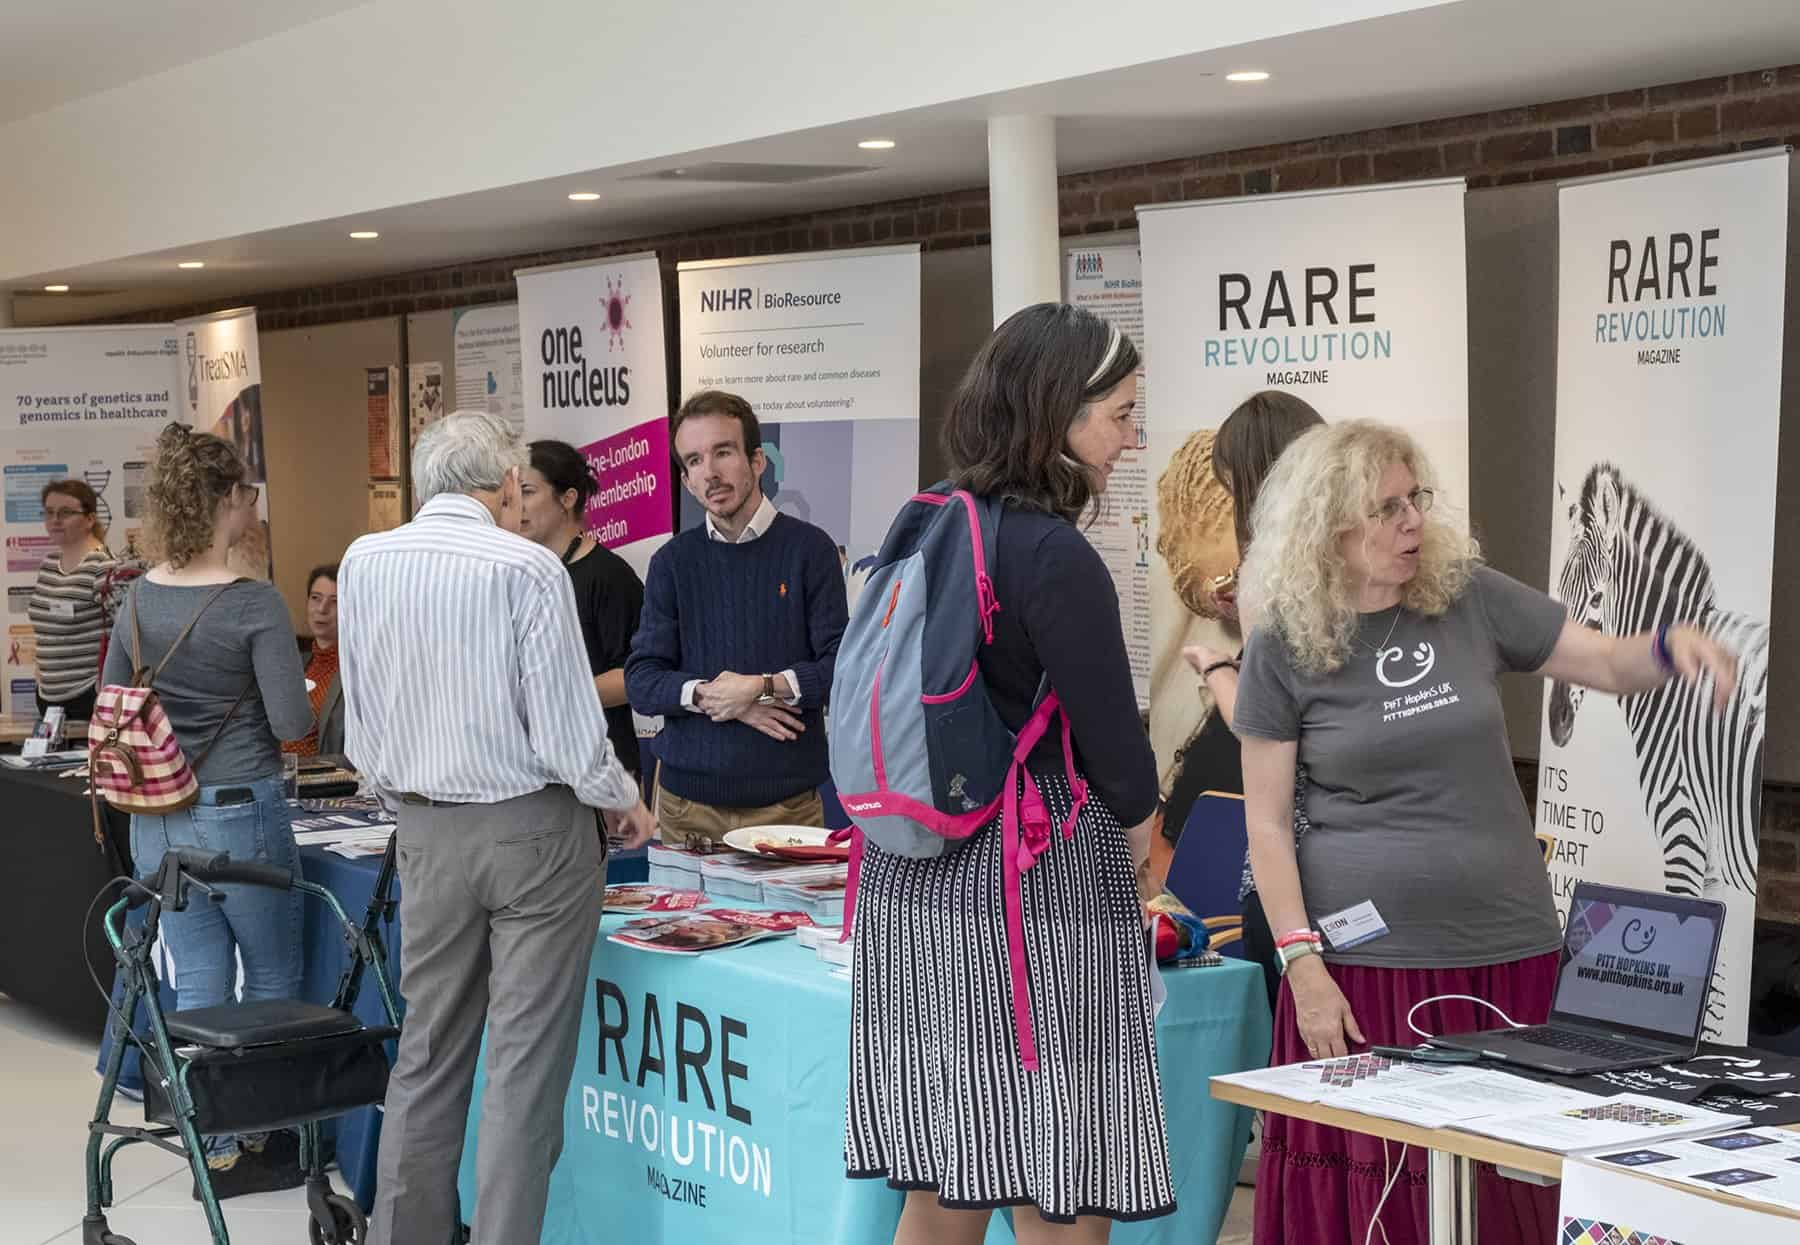 Some of the exhibition stands at RAREsummit19 (Image credit: Healthcare & Biotech Photography)